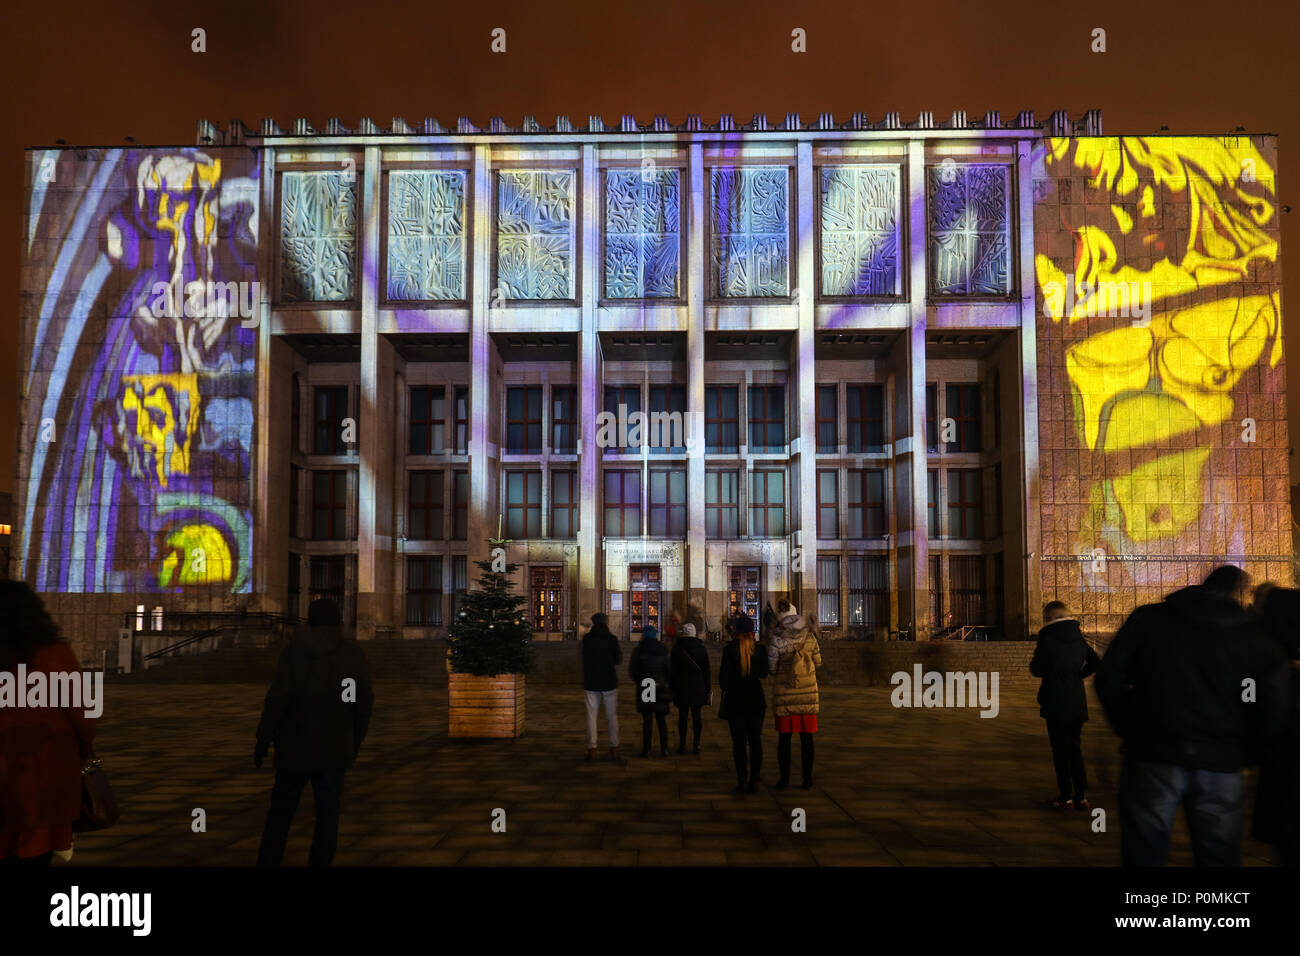 Cracow, Poland - February 3, 2018: Mapping on the facade of the National Museum inspired by the painting of Stanislaw Wyspianski. Krakow, Poland - Stock Image